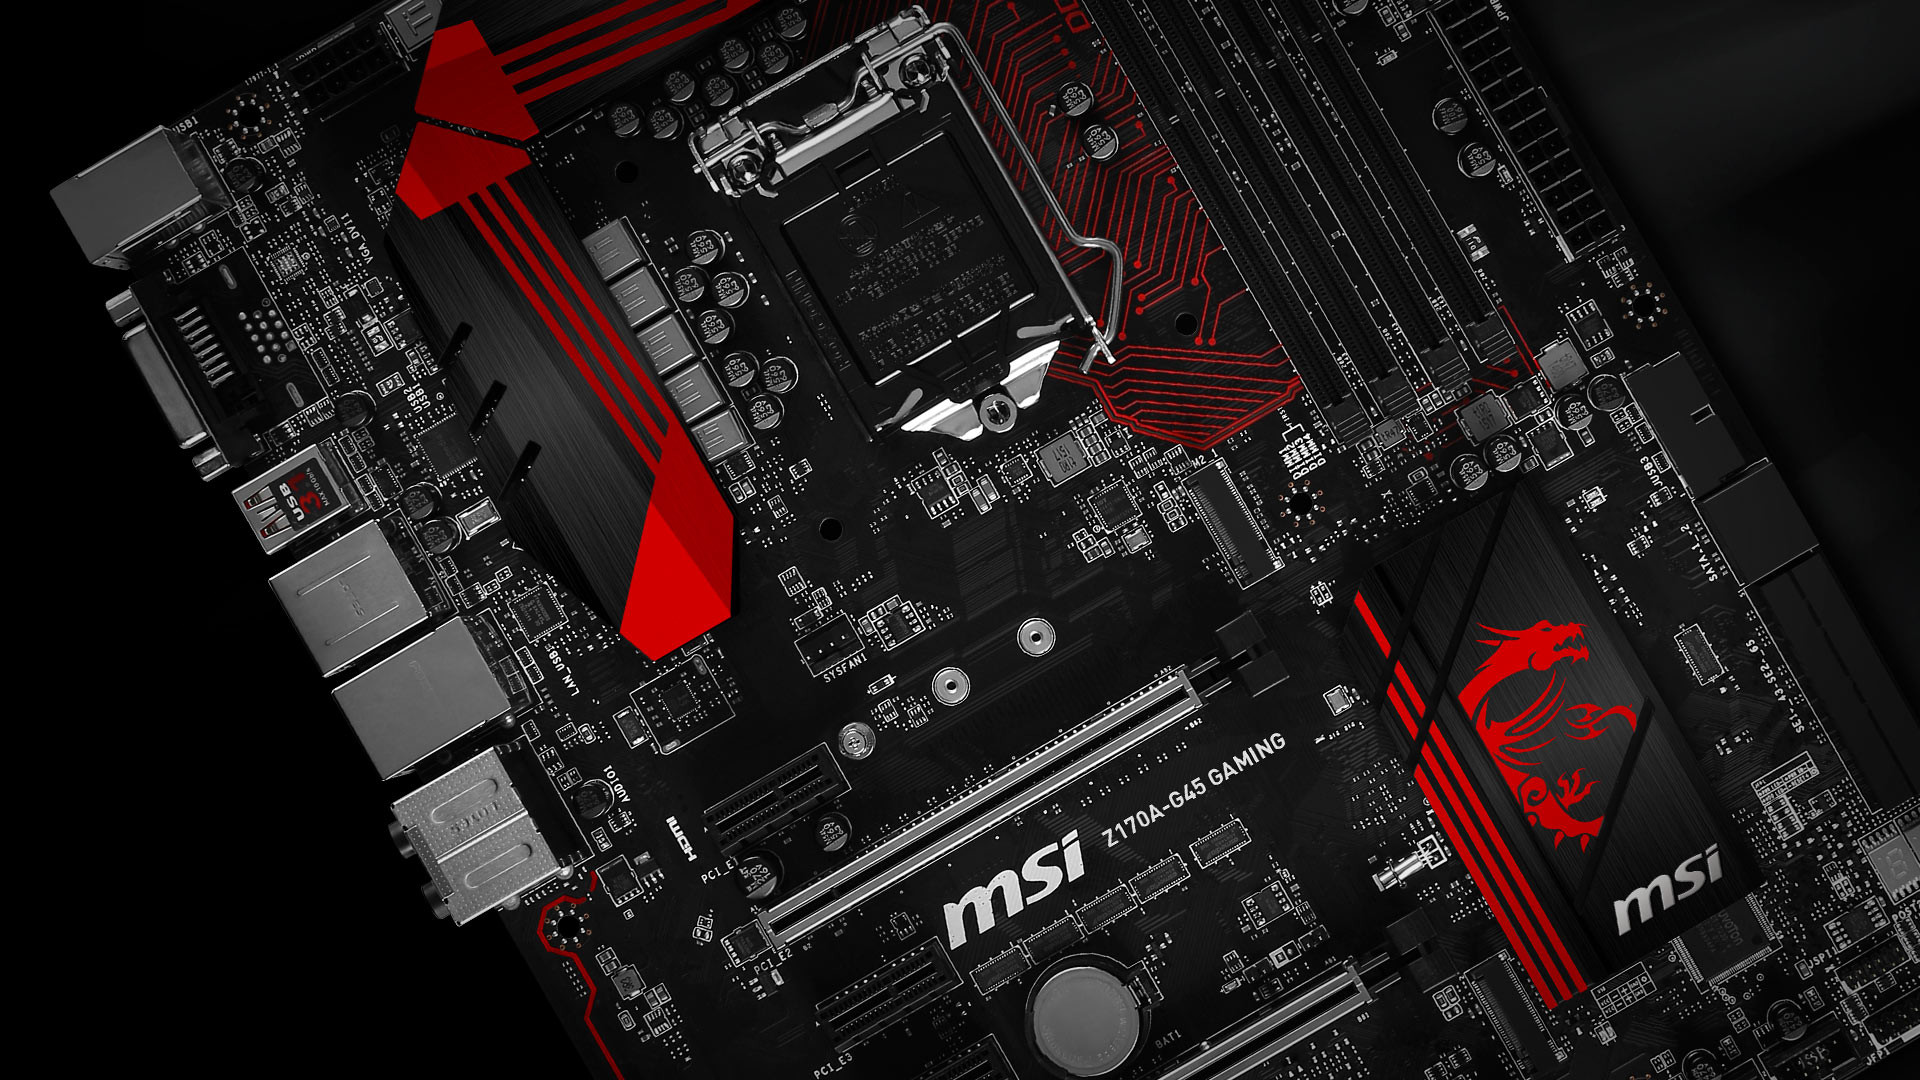 MSI Dragon Wallpaper 1920x1080 (80+ Images